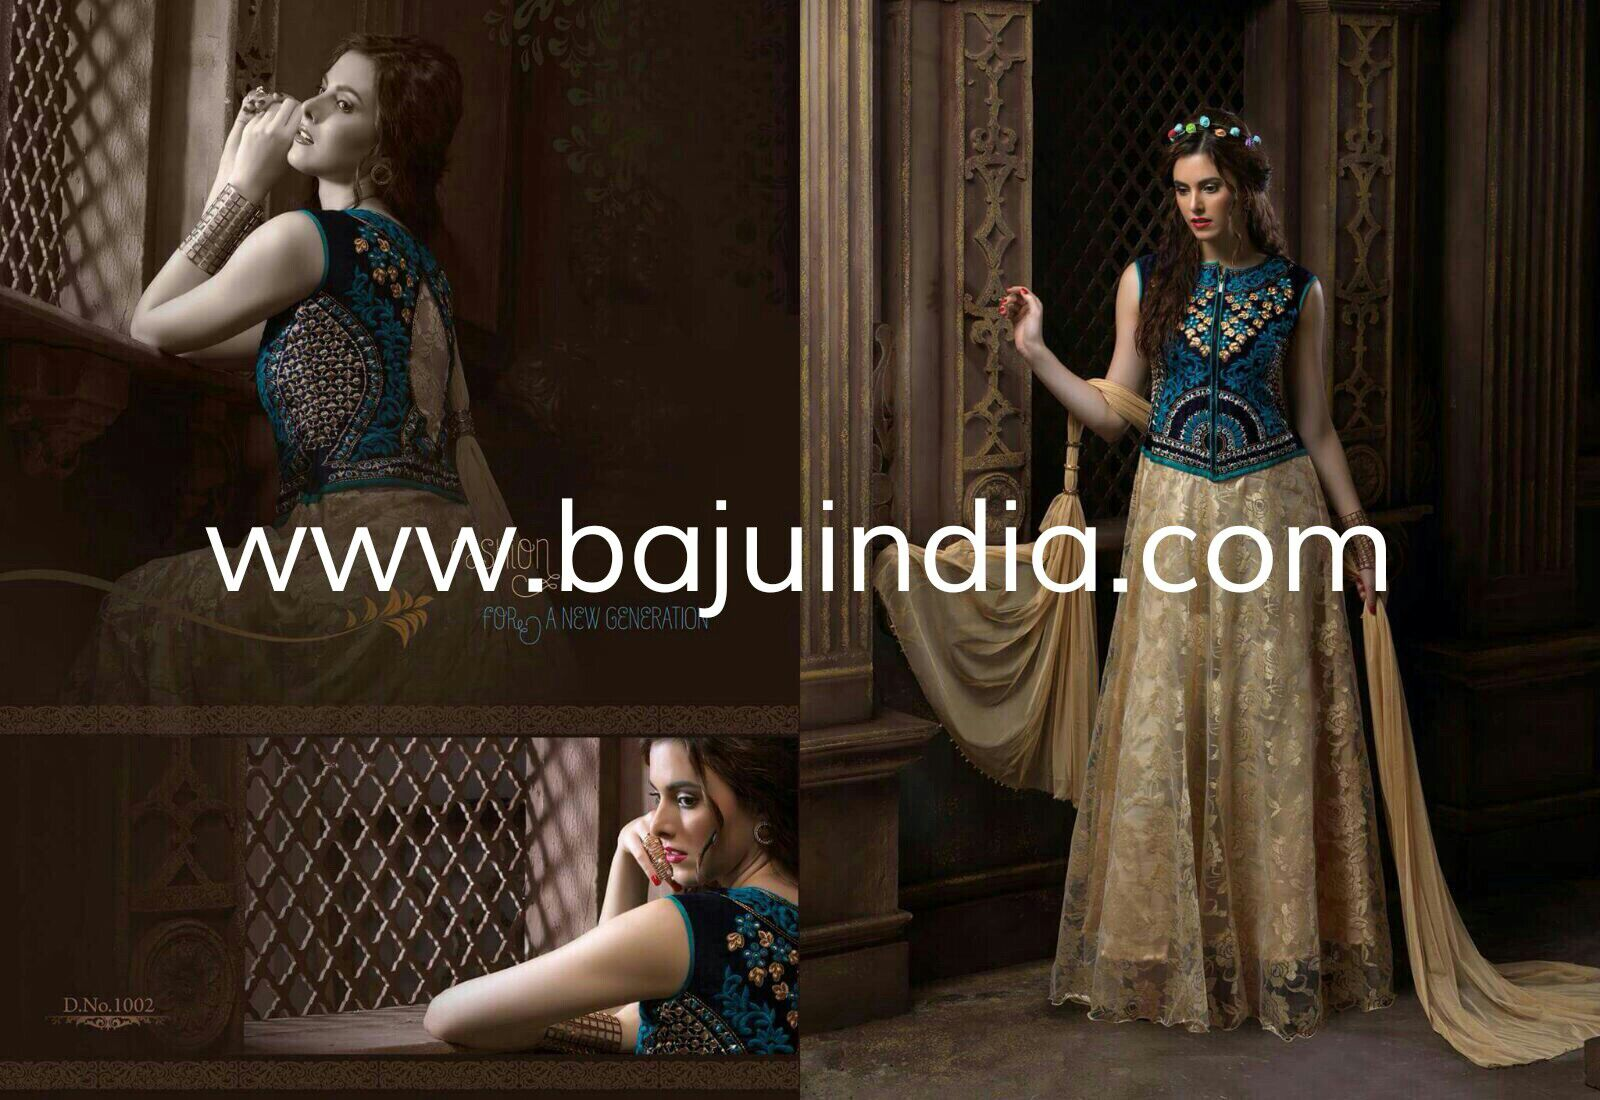 Baju India Muslim - Baju India Modern - Baju Khas India - Baju Adat India - Sari India Terbaru - Sari India Muslim - Baju Kerajaan India - Baju Salwaar India - D.No.1002